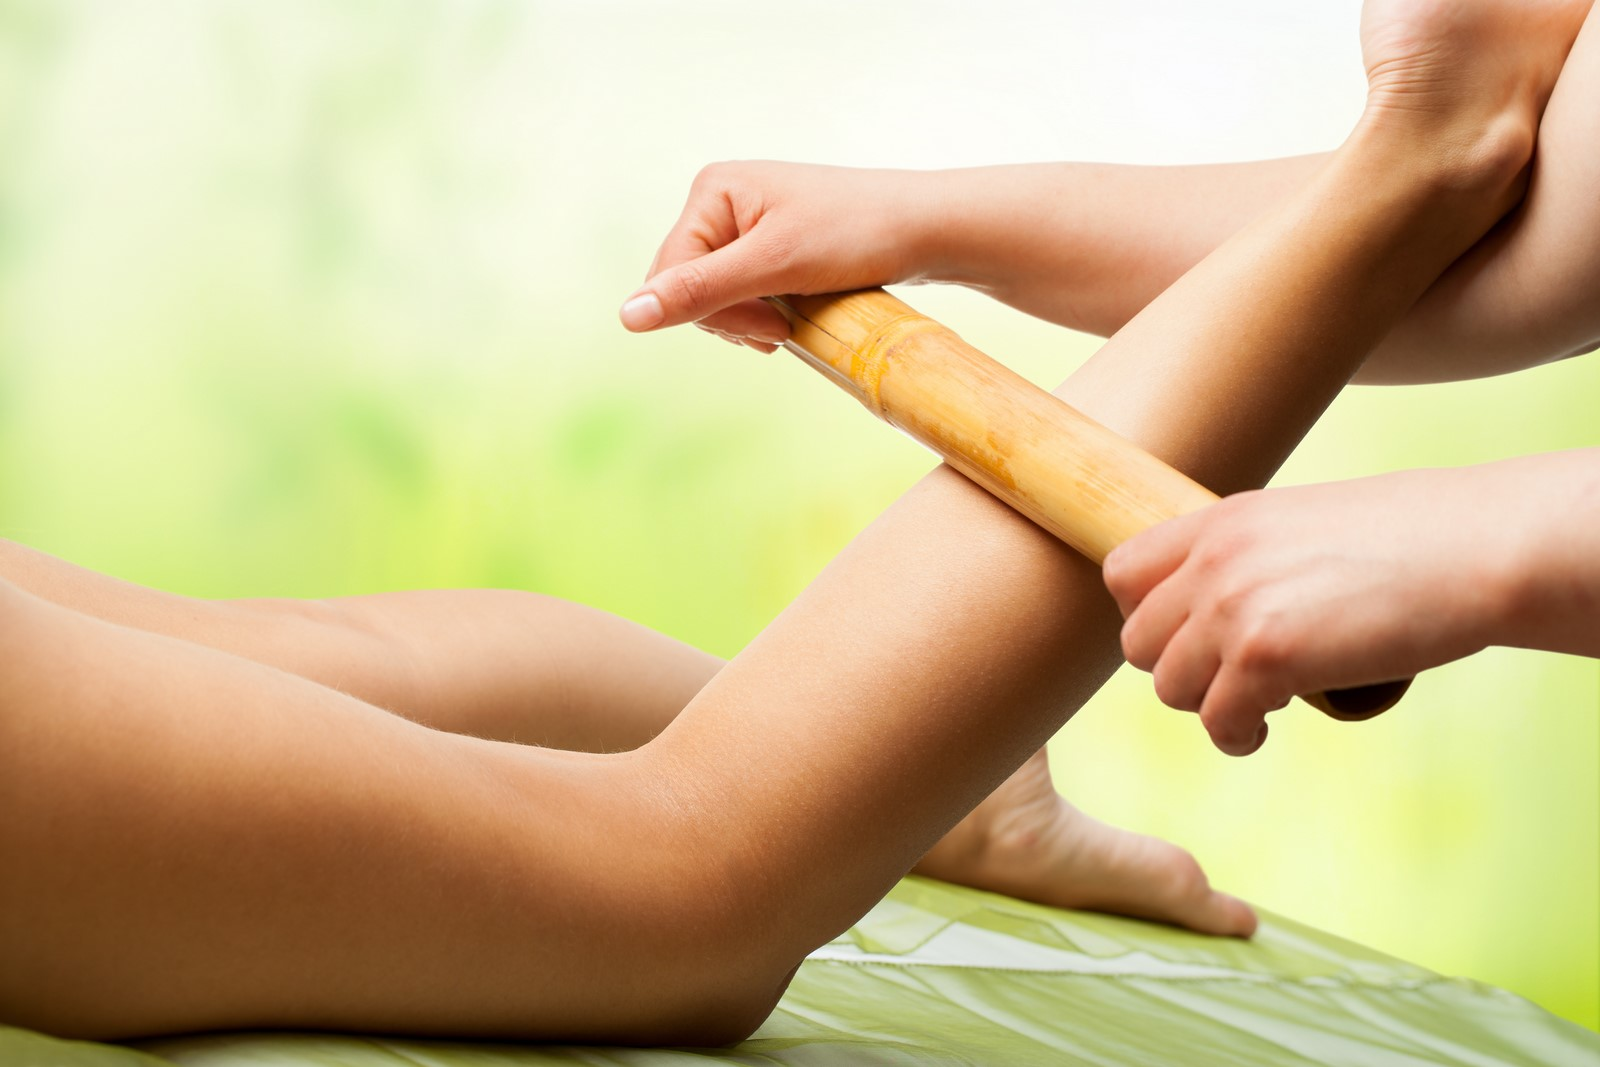 Close up of female hands doing bamboo massage on woman's legs.